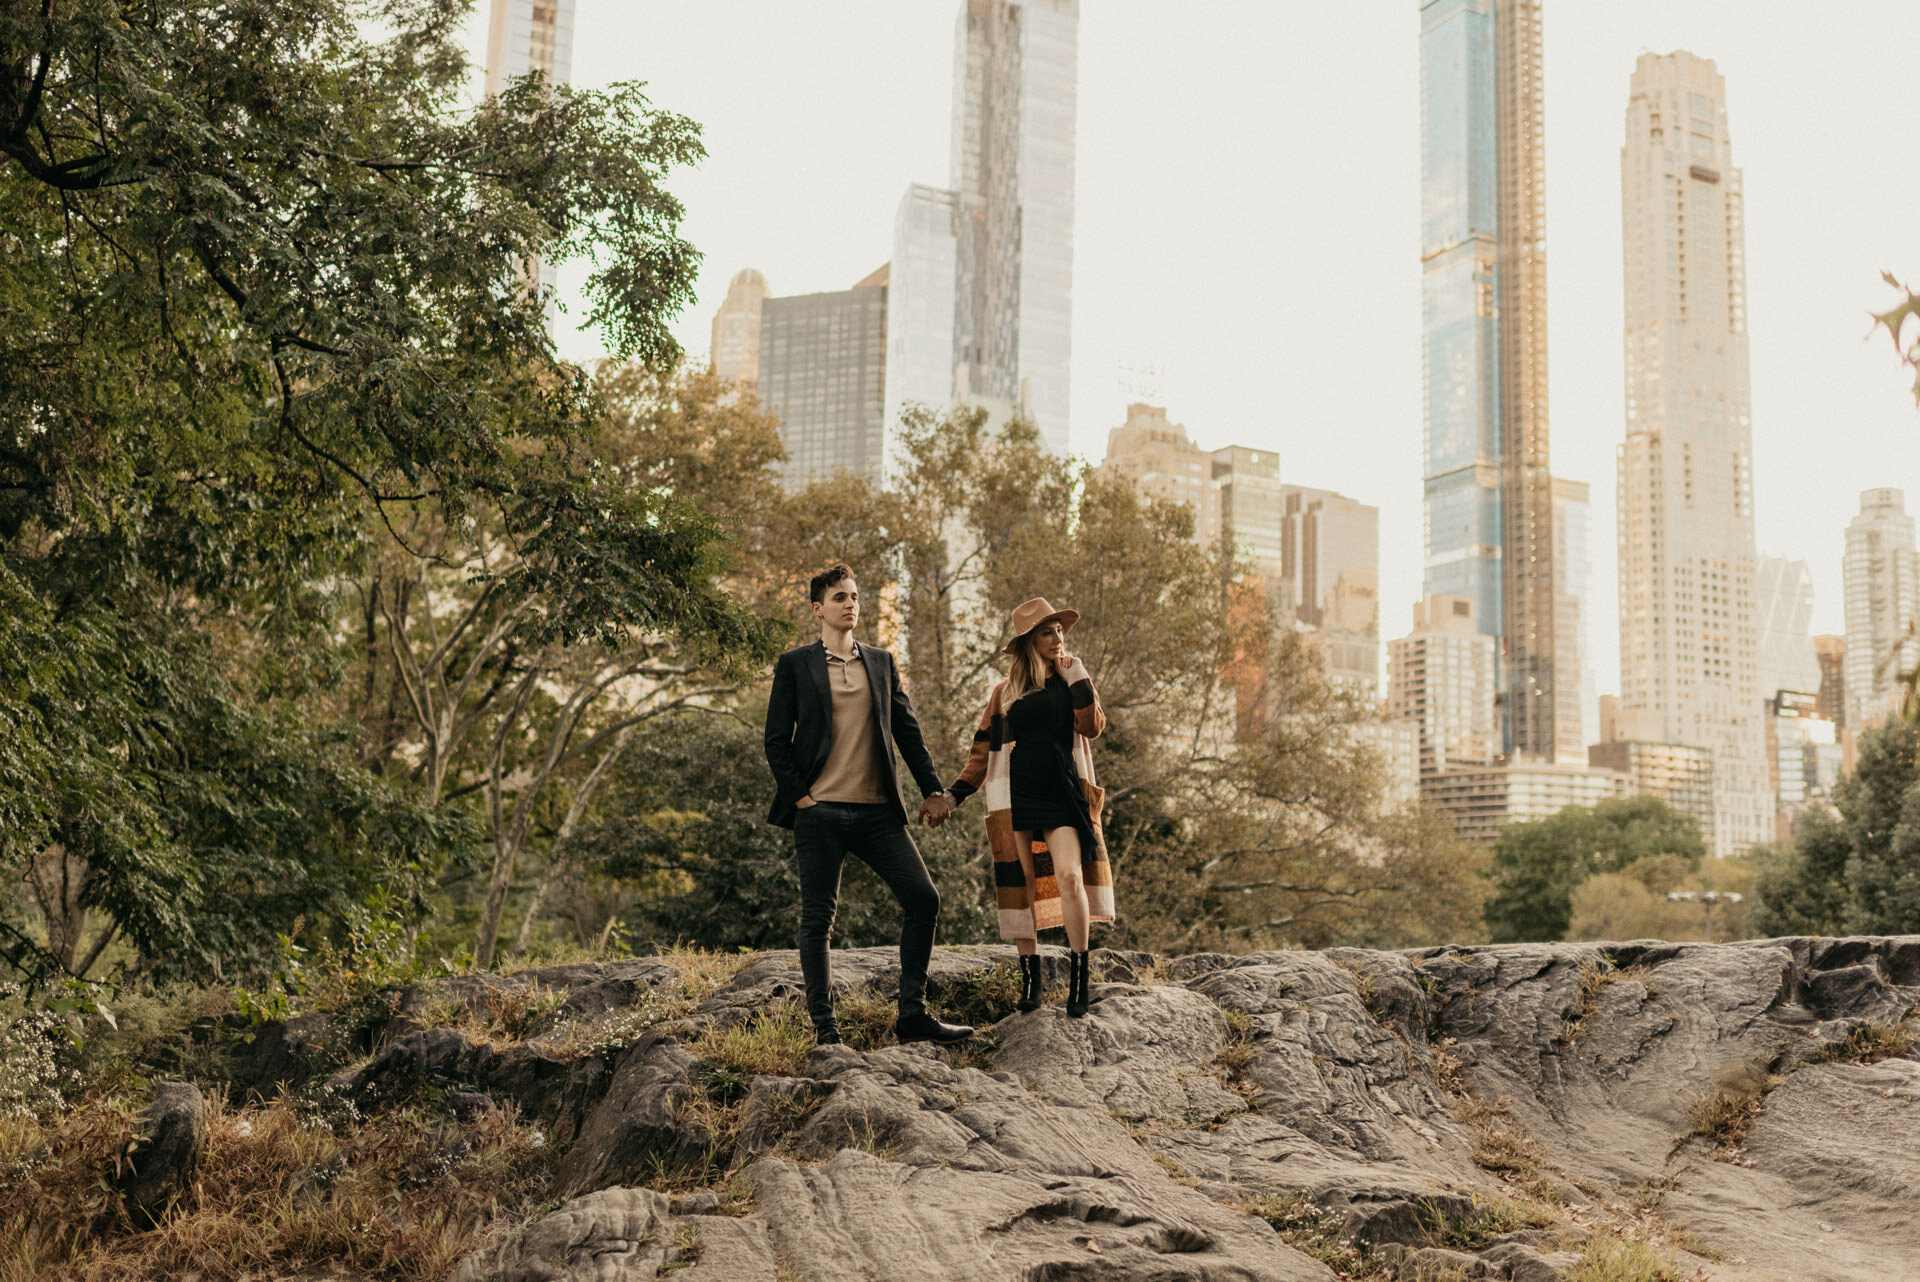 fall-october-new-york-central-park-couples-engagement-session-photographer-houston